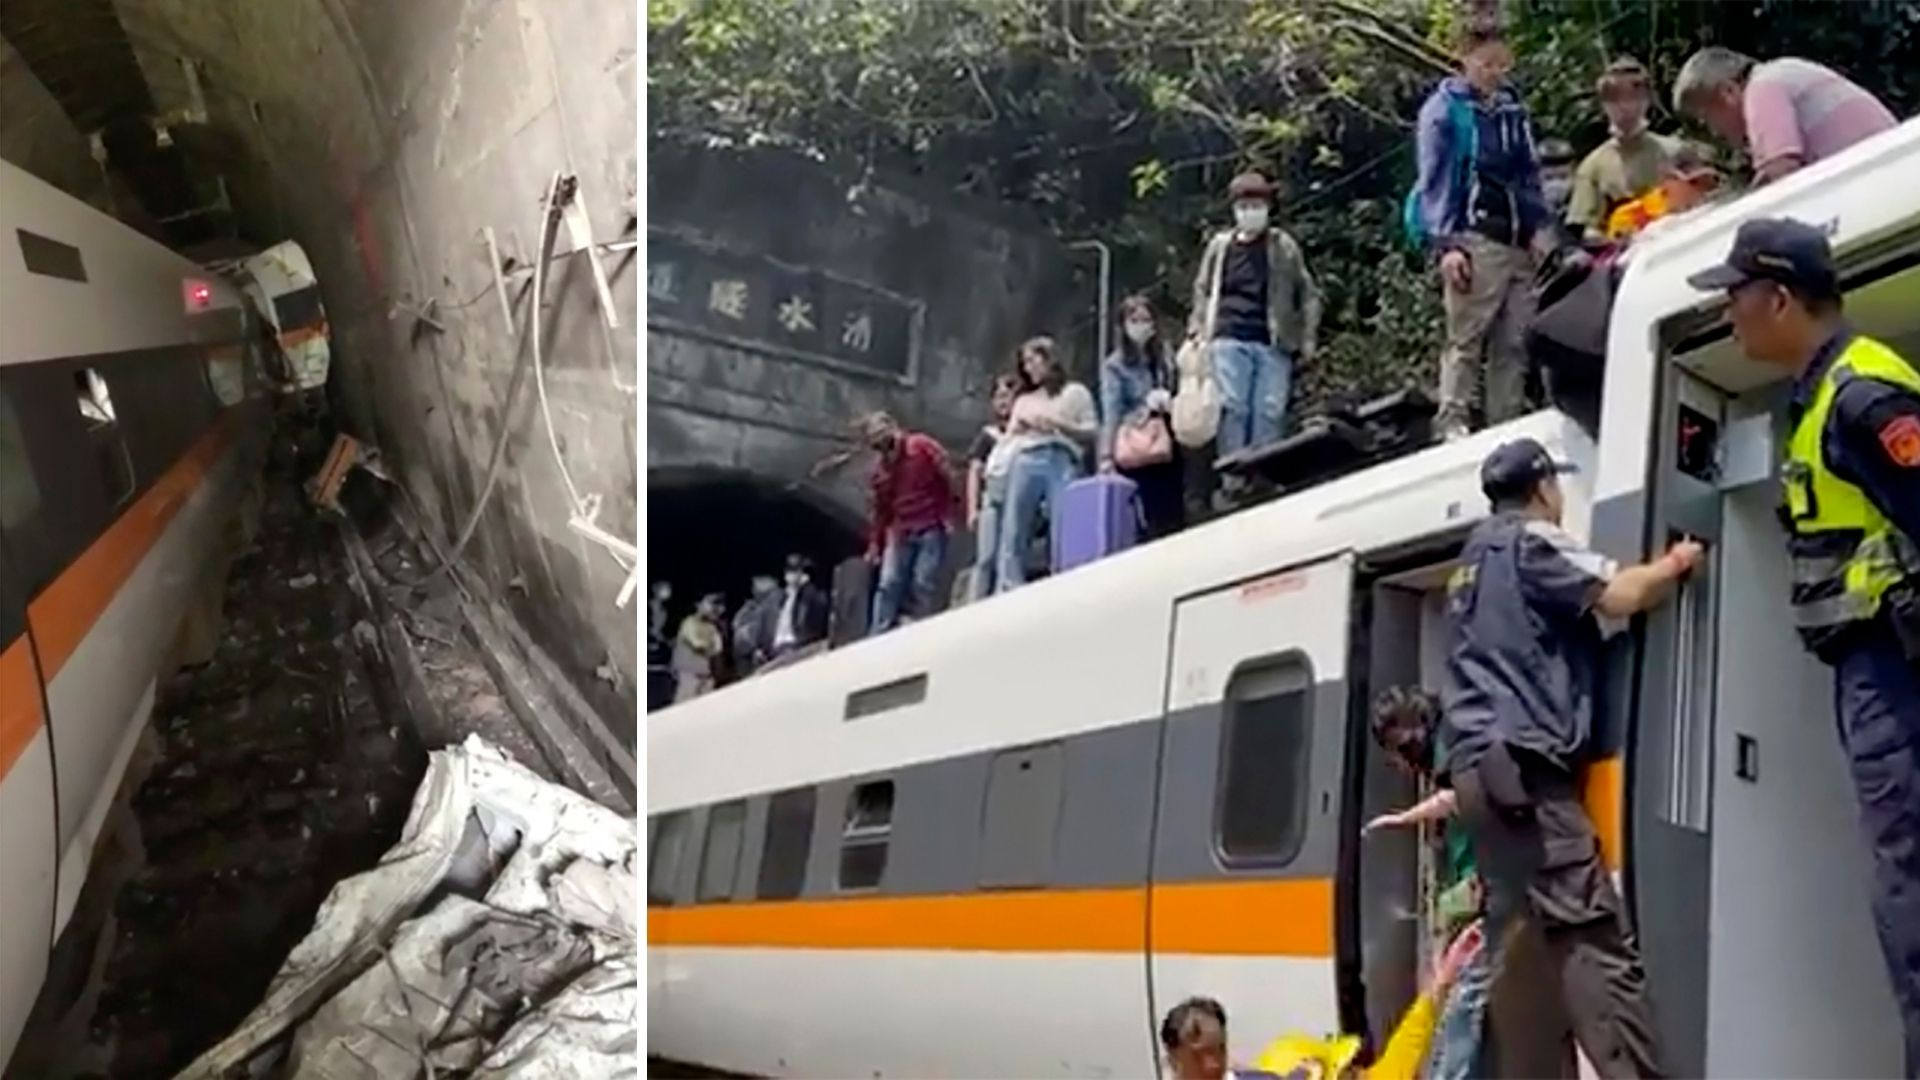 In this image made from a video released by Ministry of Interior, National Fire Department, a train is stranded in a tunnel in Hualien County in eastern Taiwan Friday, April 2, 2021. The train partially derailed along Taiwan's east coast Friday; In an image made from a video released by hsnews.com.tw, passengers are helped to climb out of the derailed train. (Ministry of Interior, National Fire Department / hsnews.com.tw via AP)